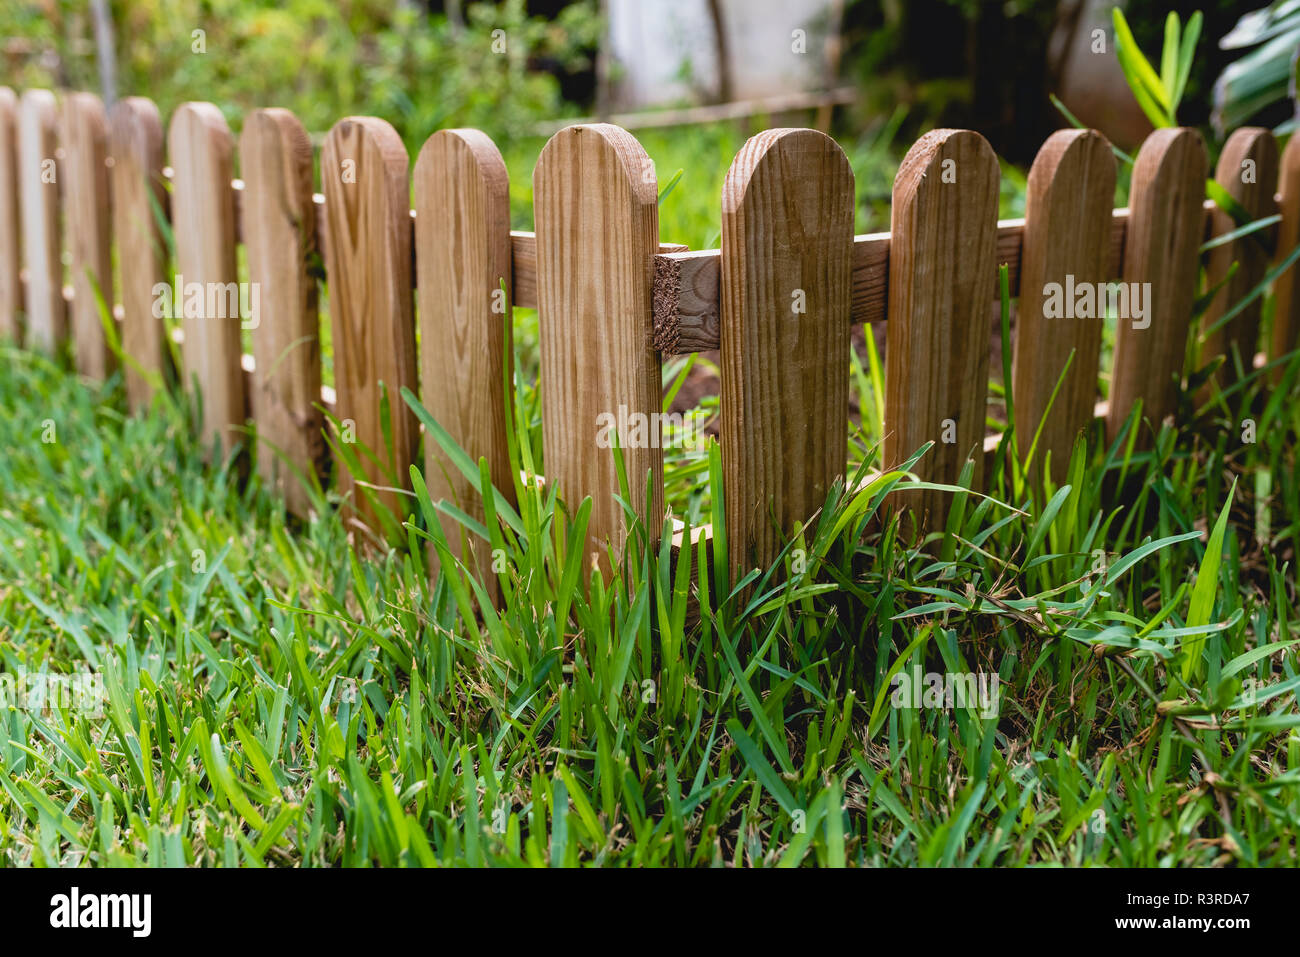 Small Wooden Fence In A Garden Stock Photo 226094127 Alamy